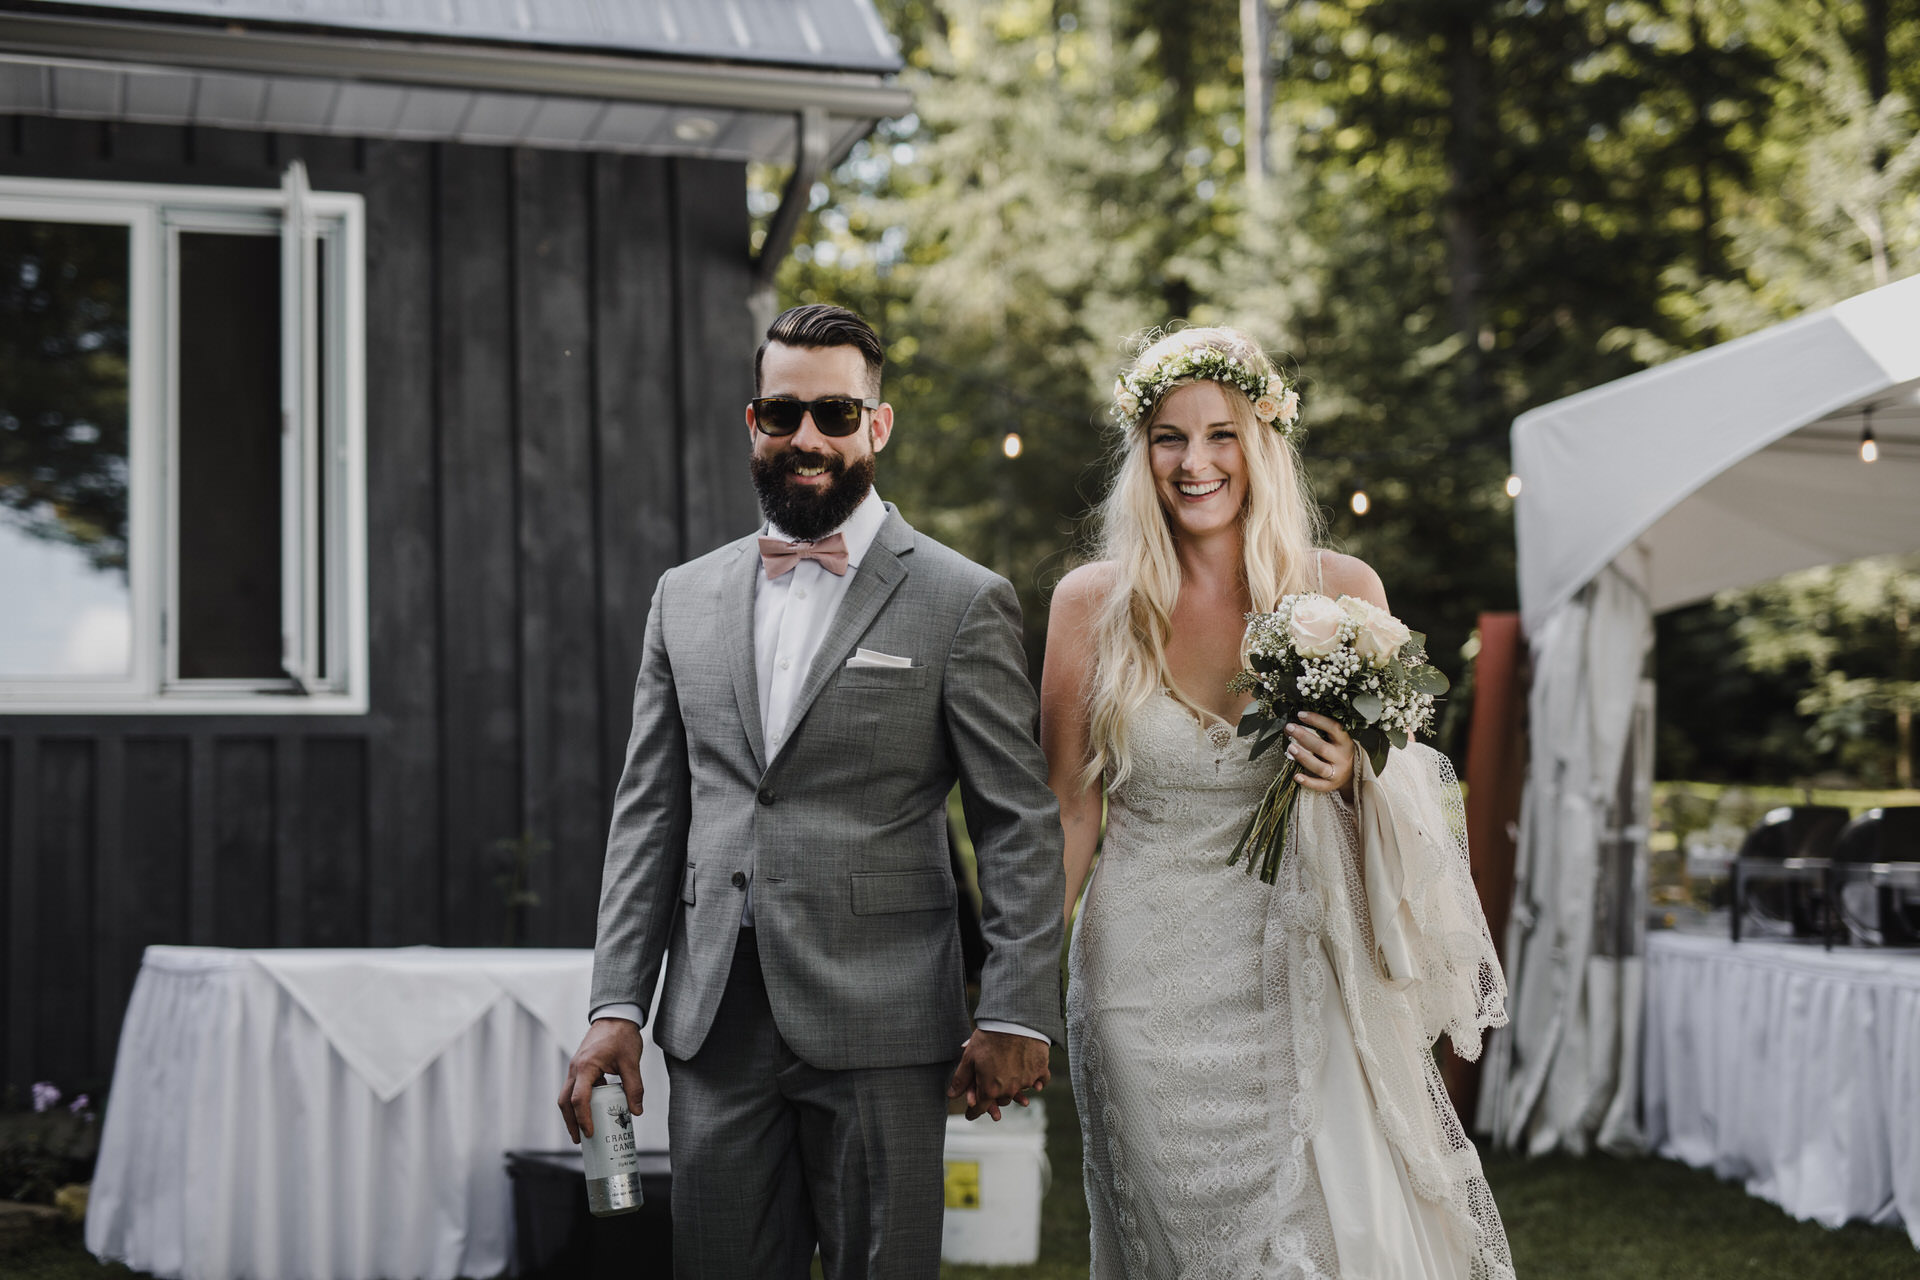 Muskoka Wedding - laid back cottage wedding